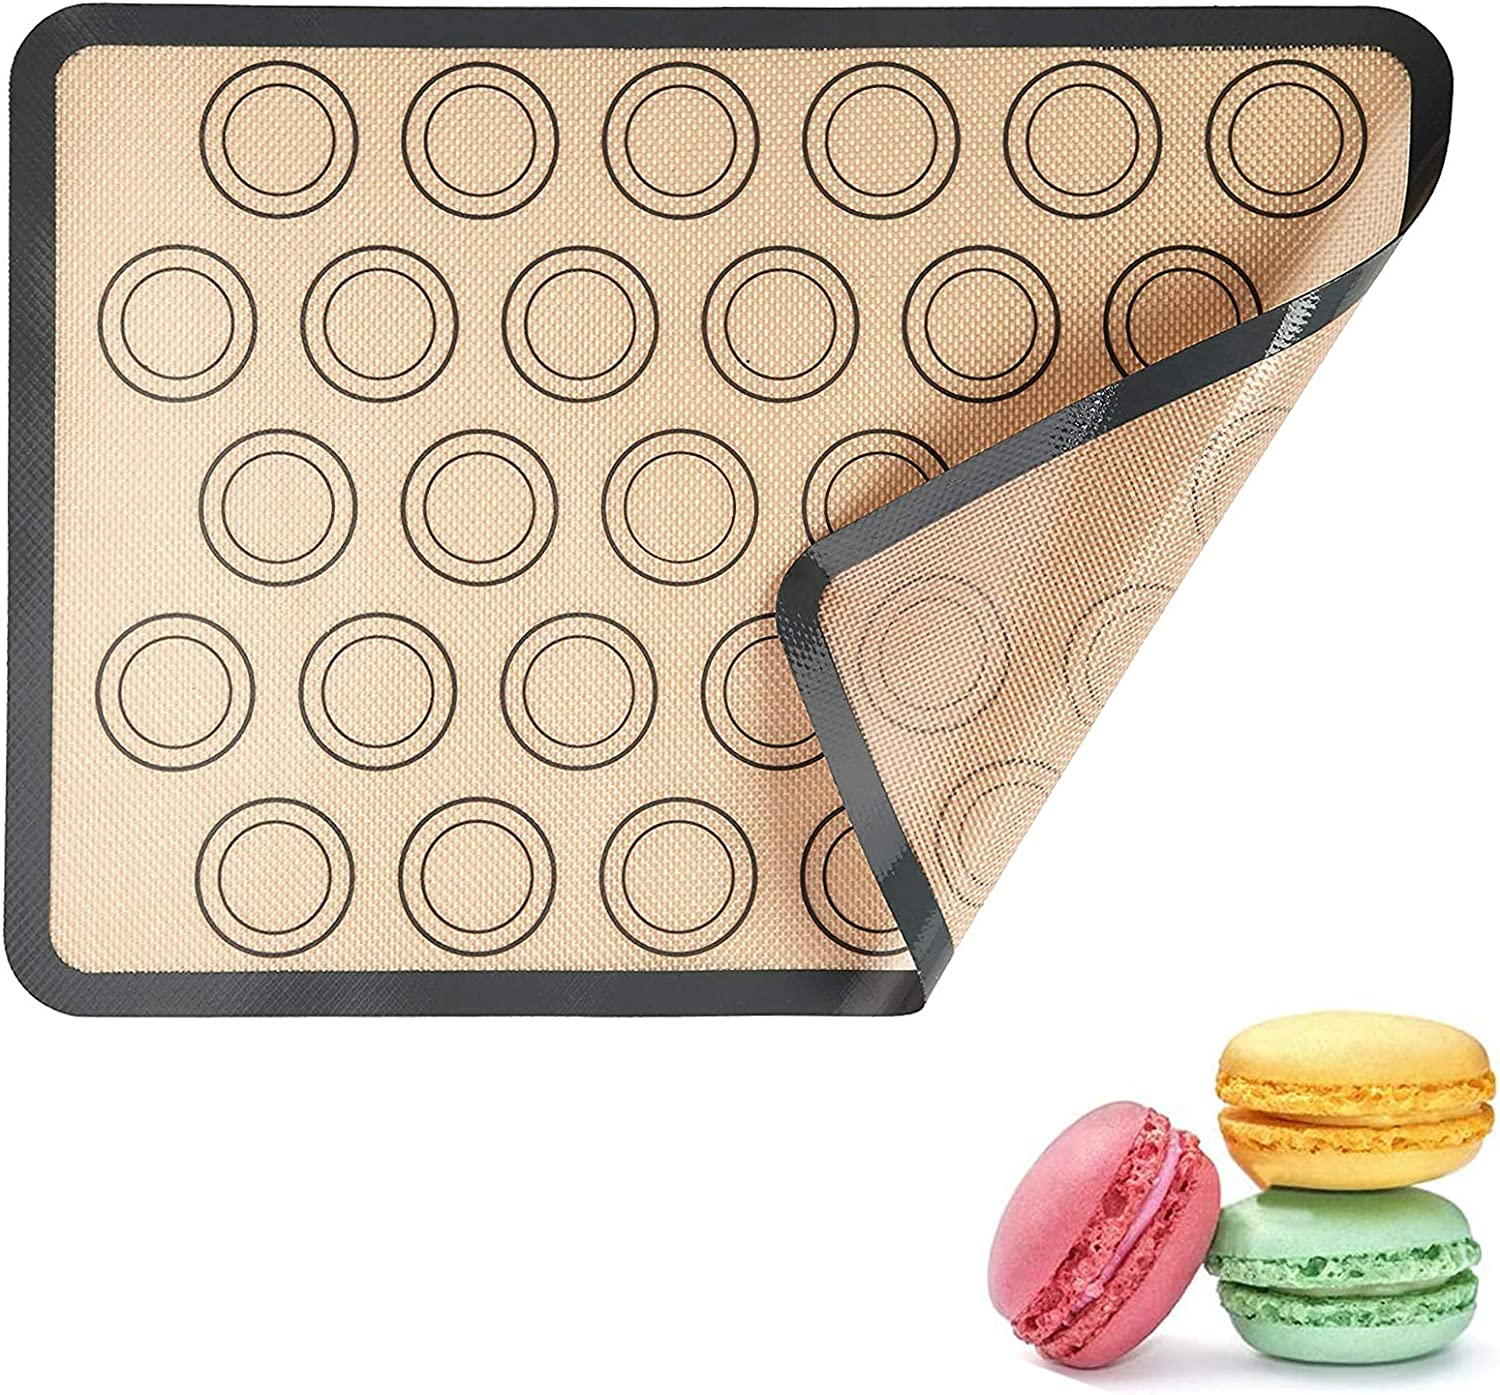 Carperipher Silicone Baking Mat, 11.6x16.5 Inches Non-Stick, Food Grade Macaron Silicone Baking Mats, Reusable Oven Sheet Liner Baking Mat for Macarons, Pastry, Bread, Cookie, Pizza Making